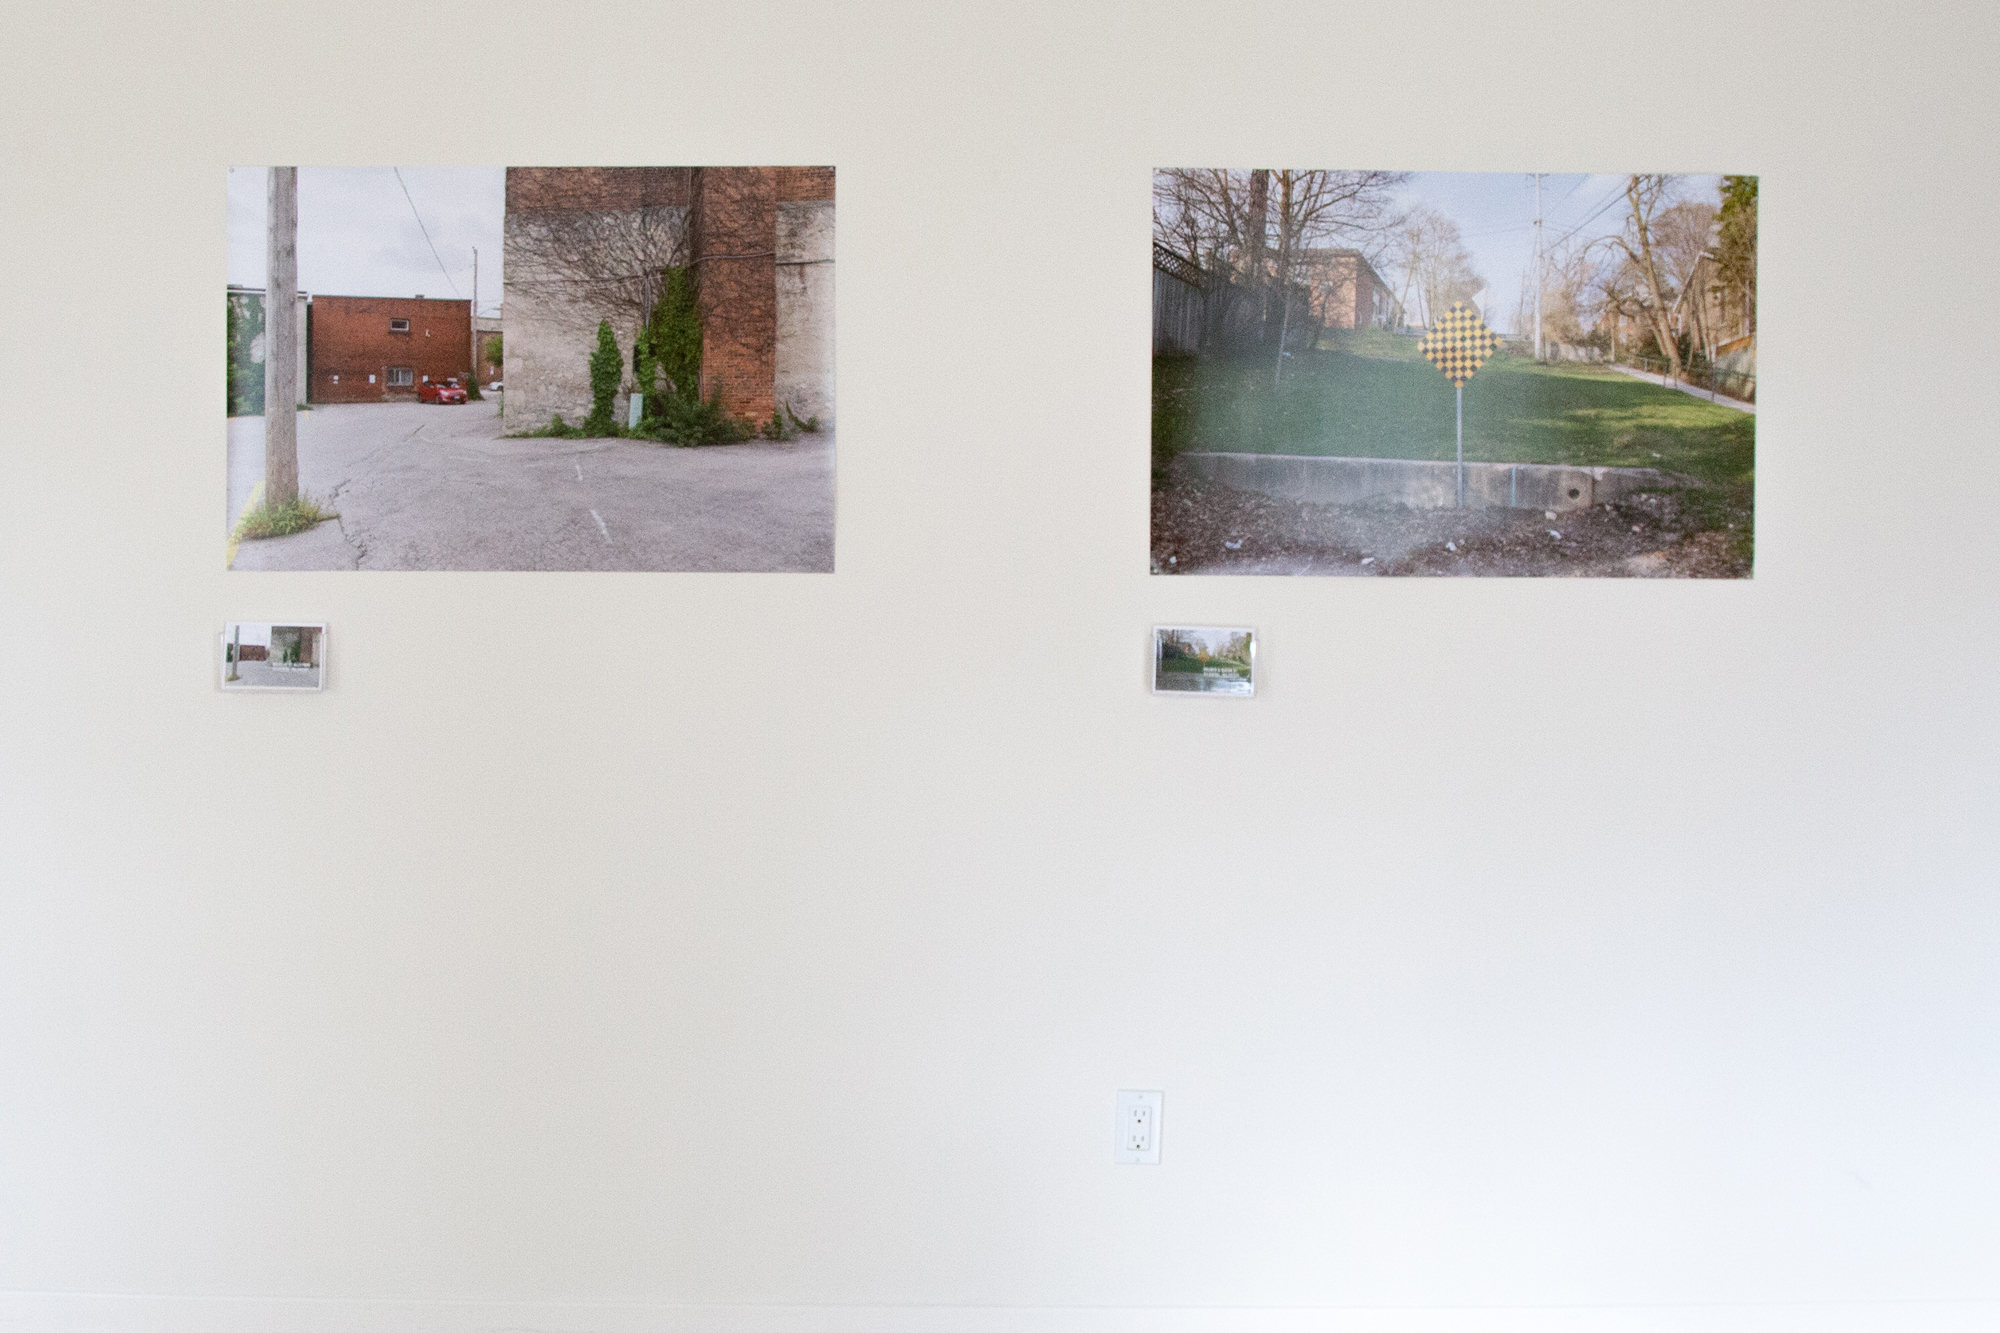 Exhibition photo 4 - Sounding the City 003 - Guelph 2018